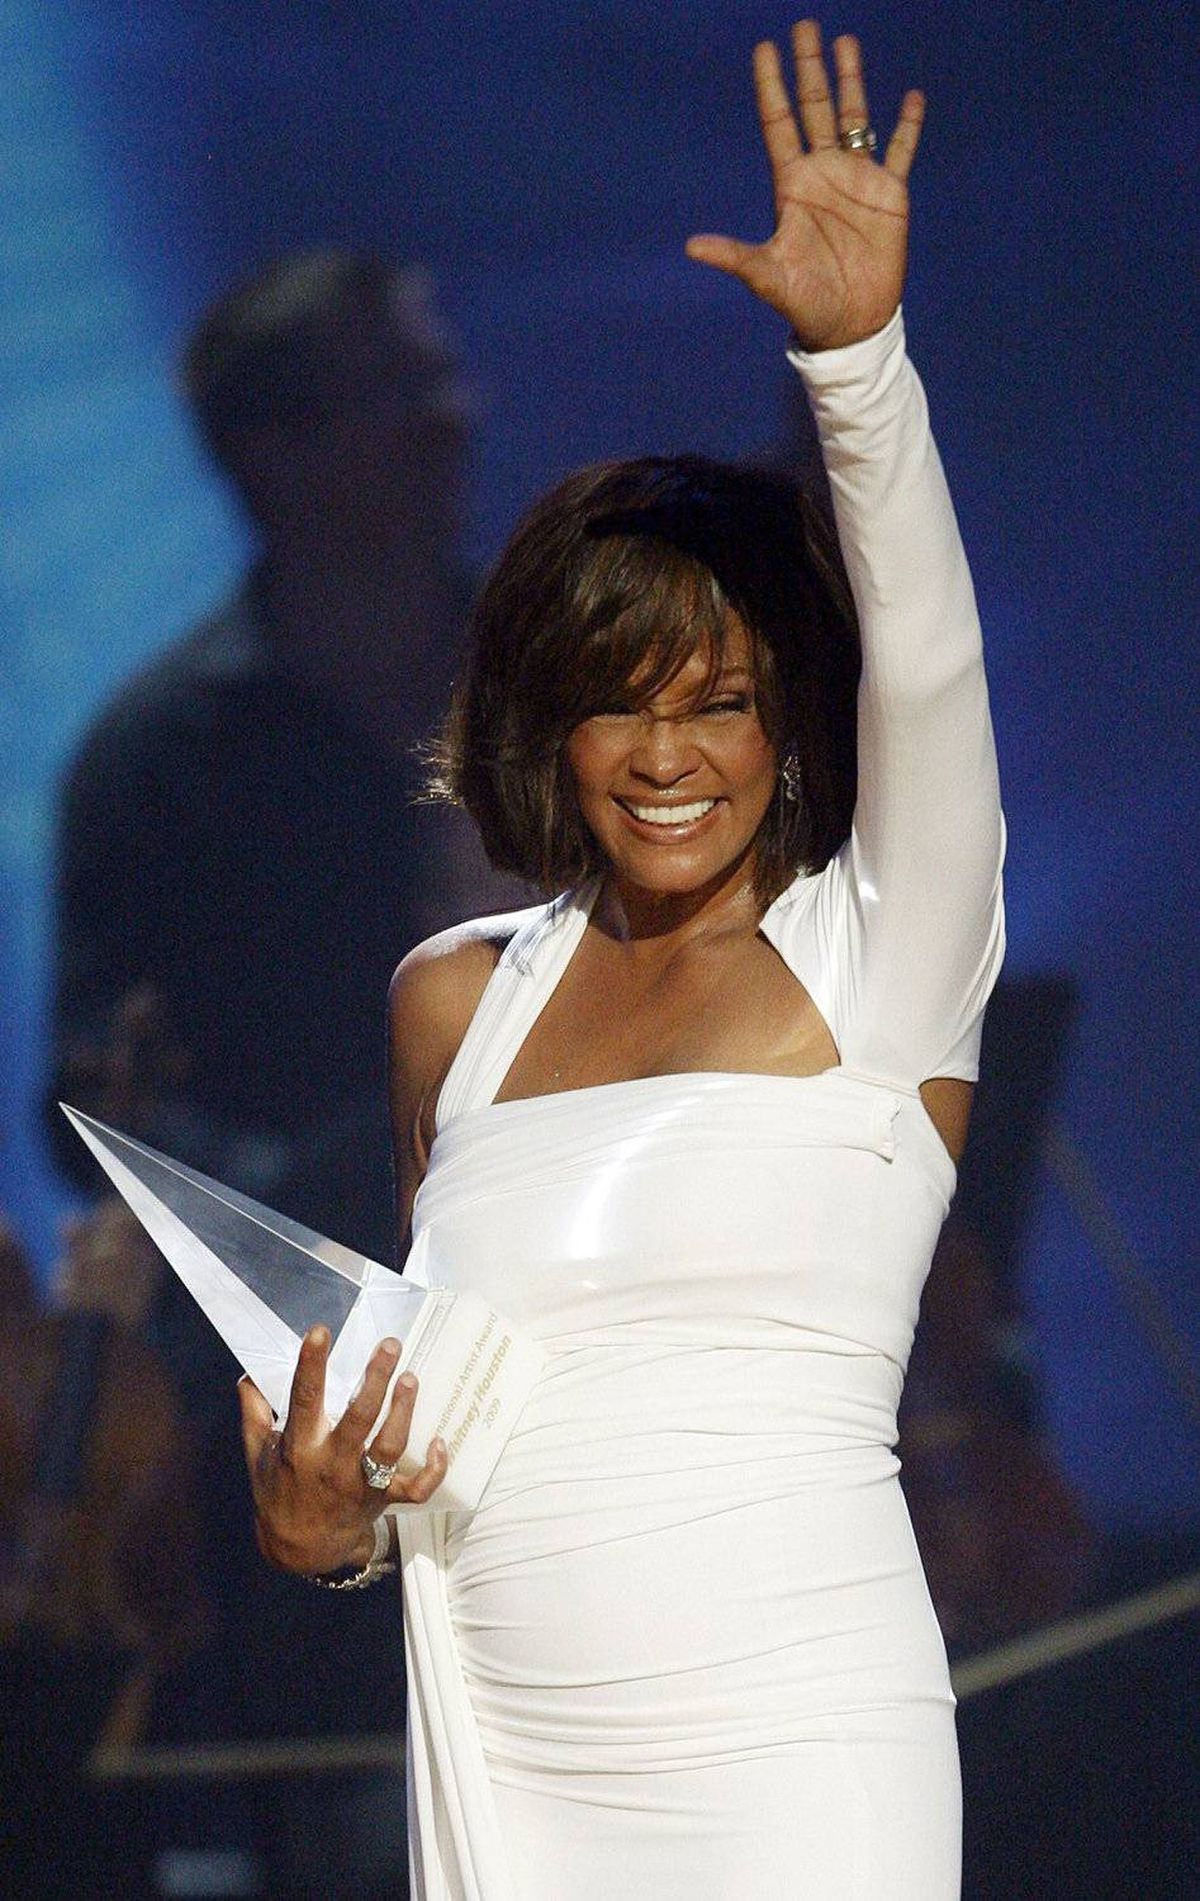 Singer Whitney Houston accepts the International Artist of the Year Award at the 2009 American Music Awards in November, 2009, the year of her successful comeback album I Look to You.